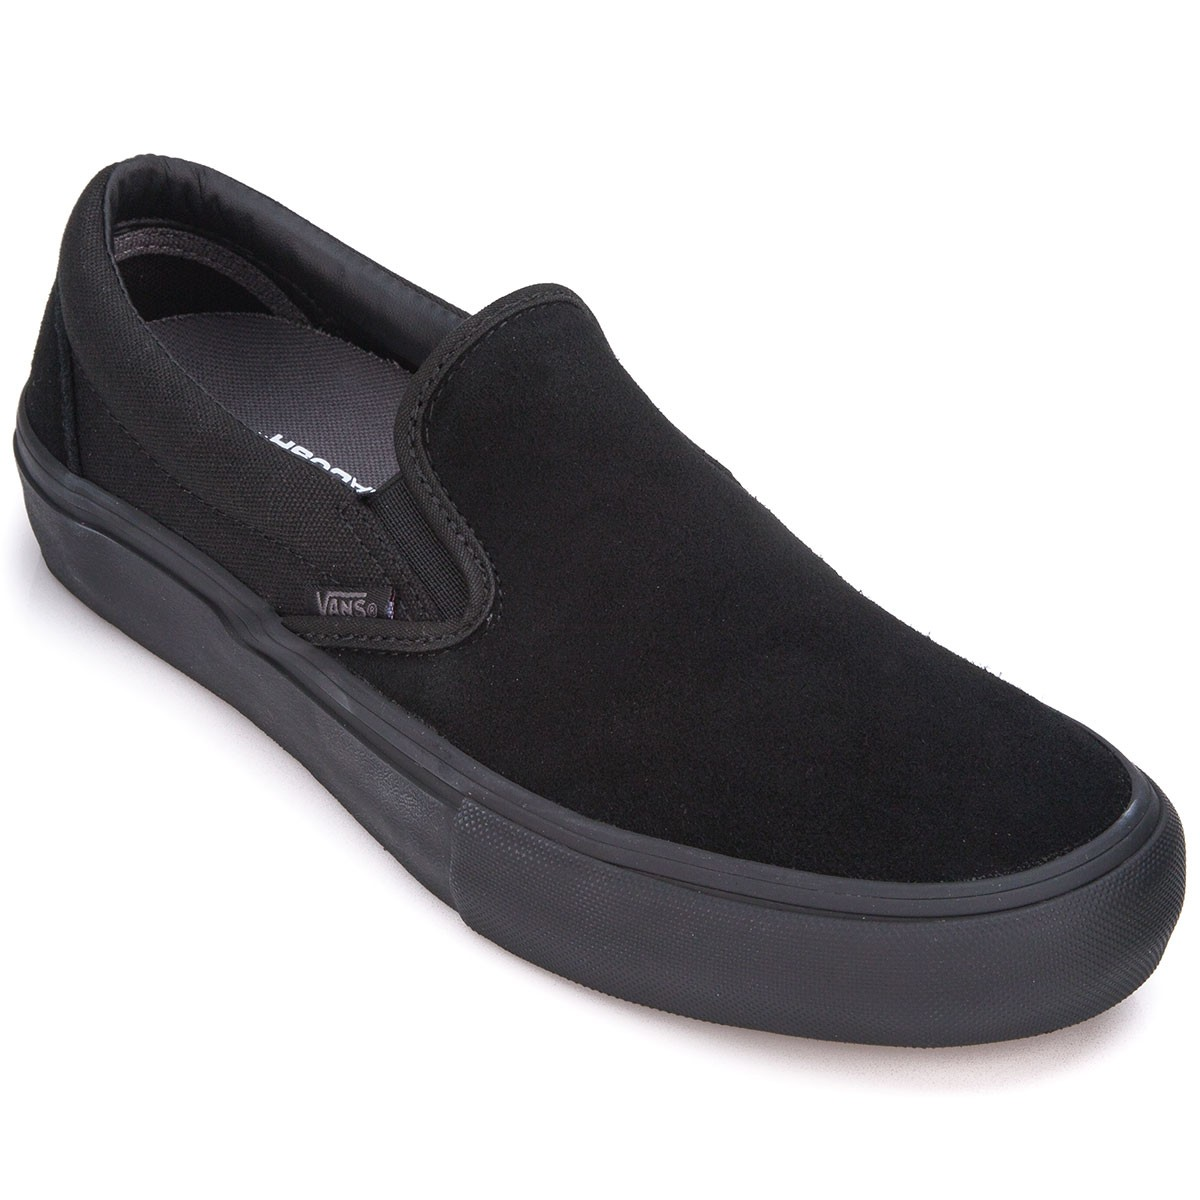 6f50521737ab9b Vans Slip-On Pro Shoes